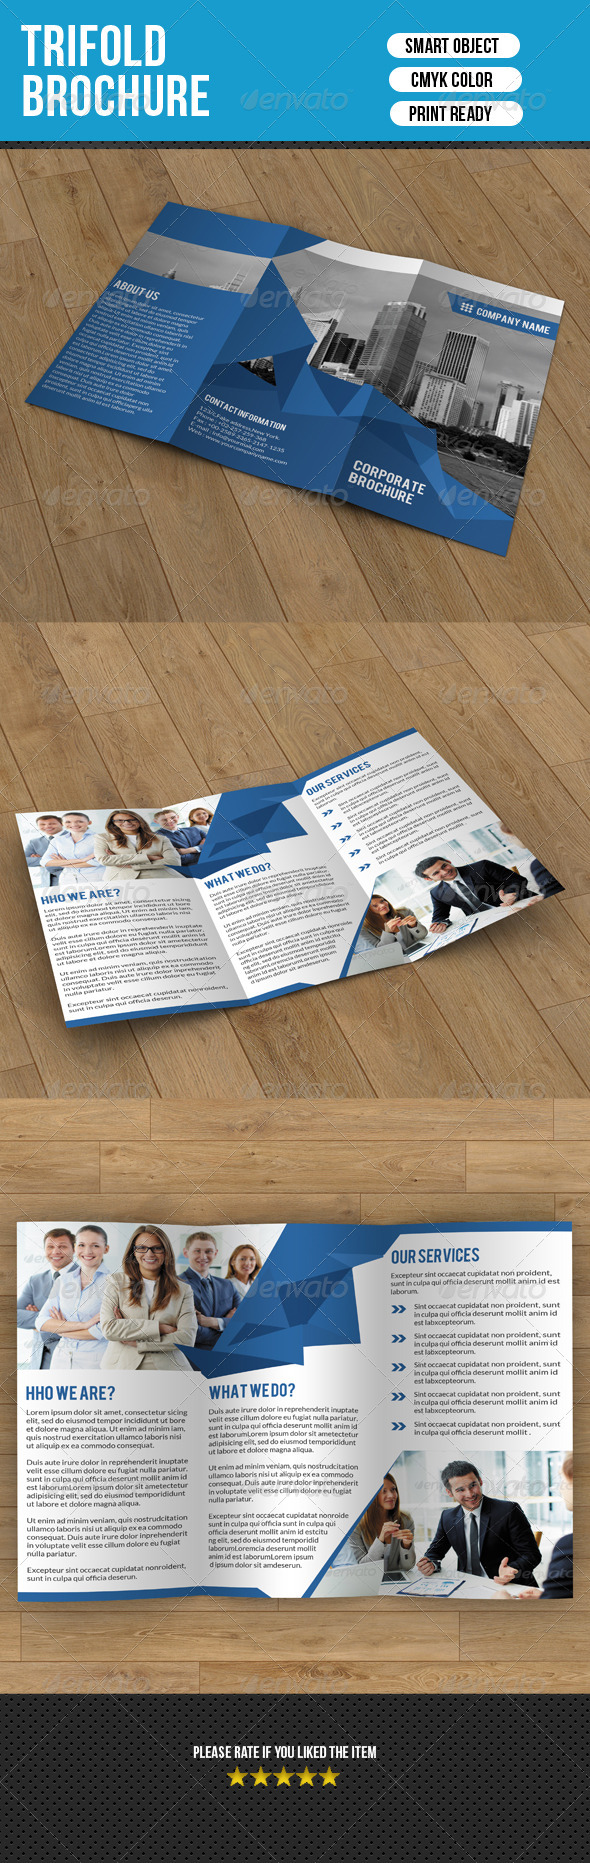 GraphicRiver Trifold Brochure-Business 7684853